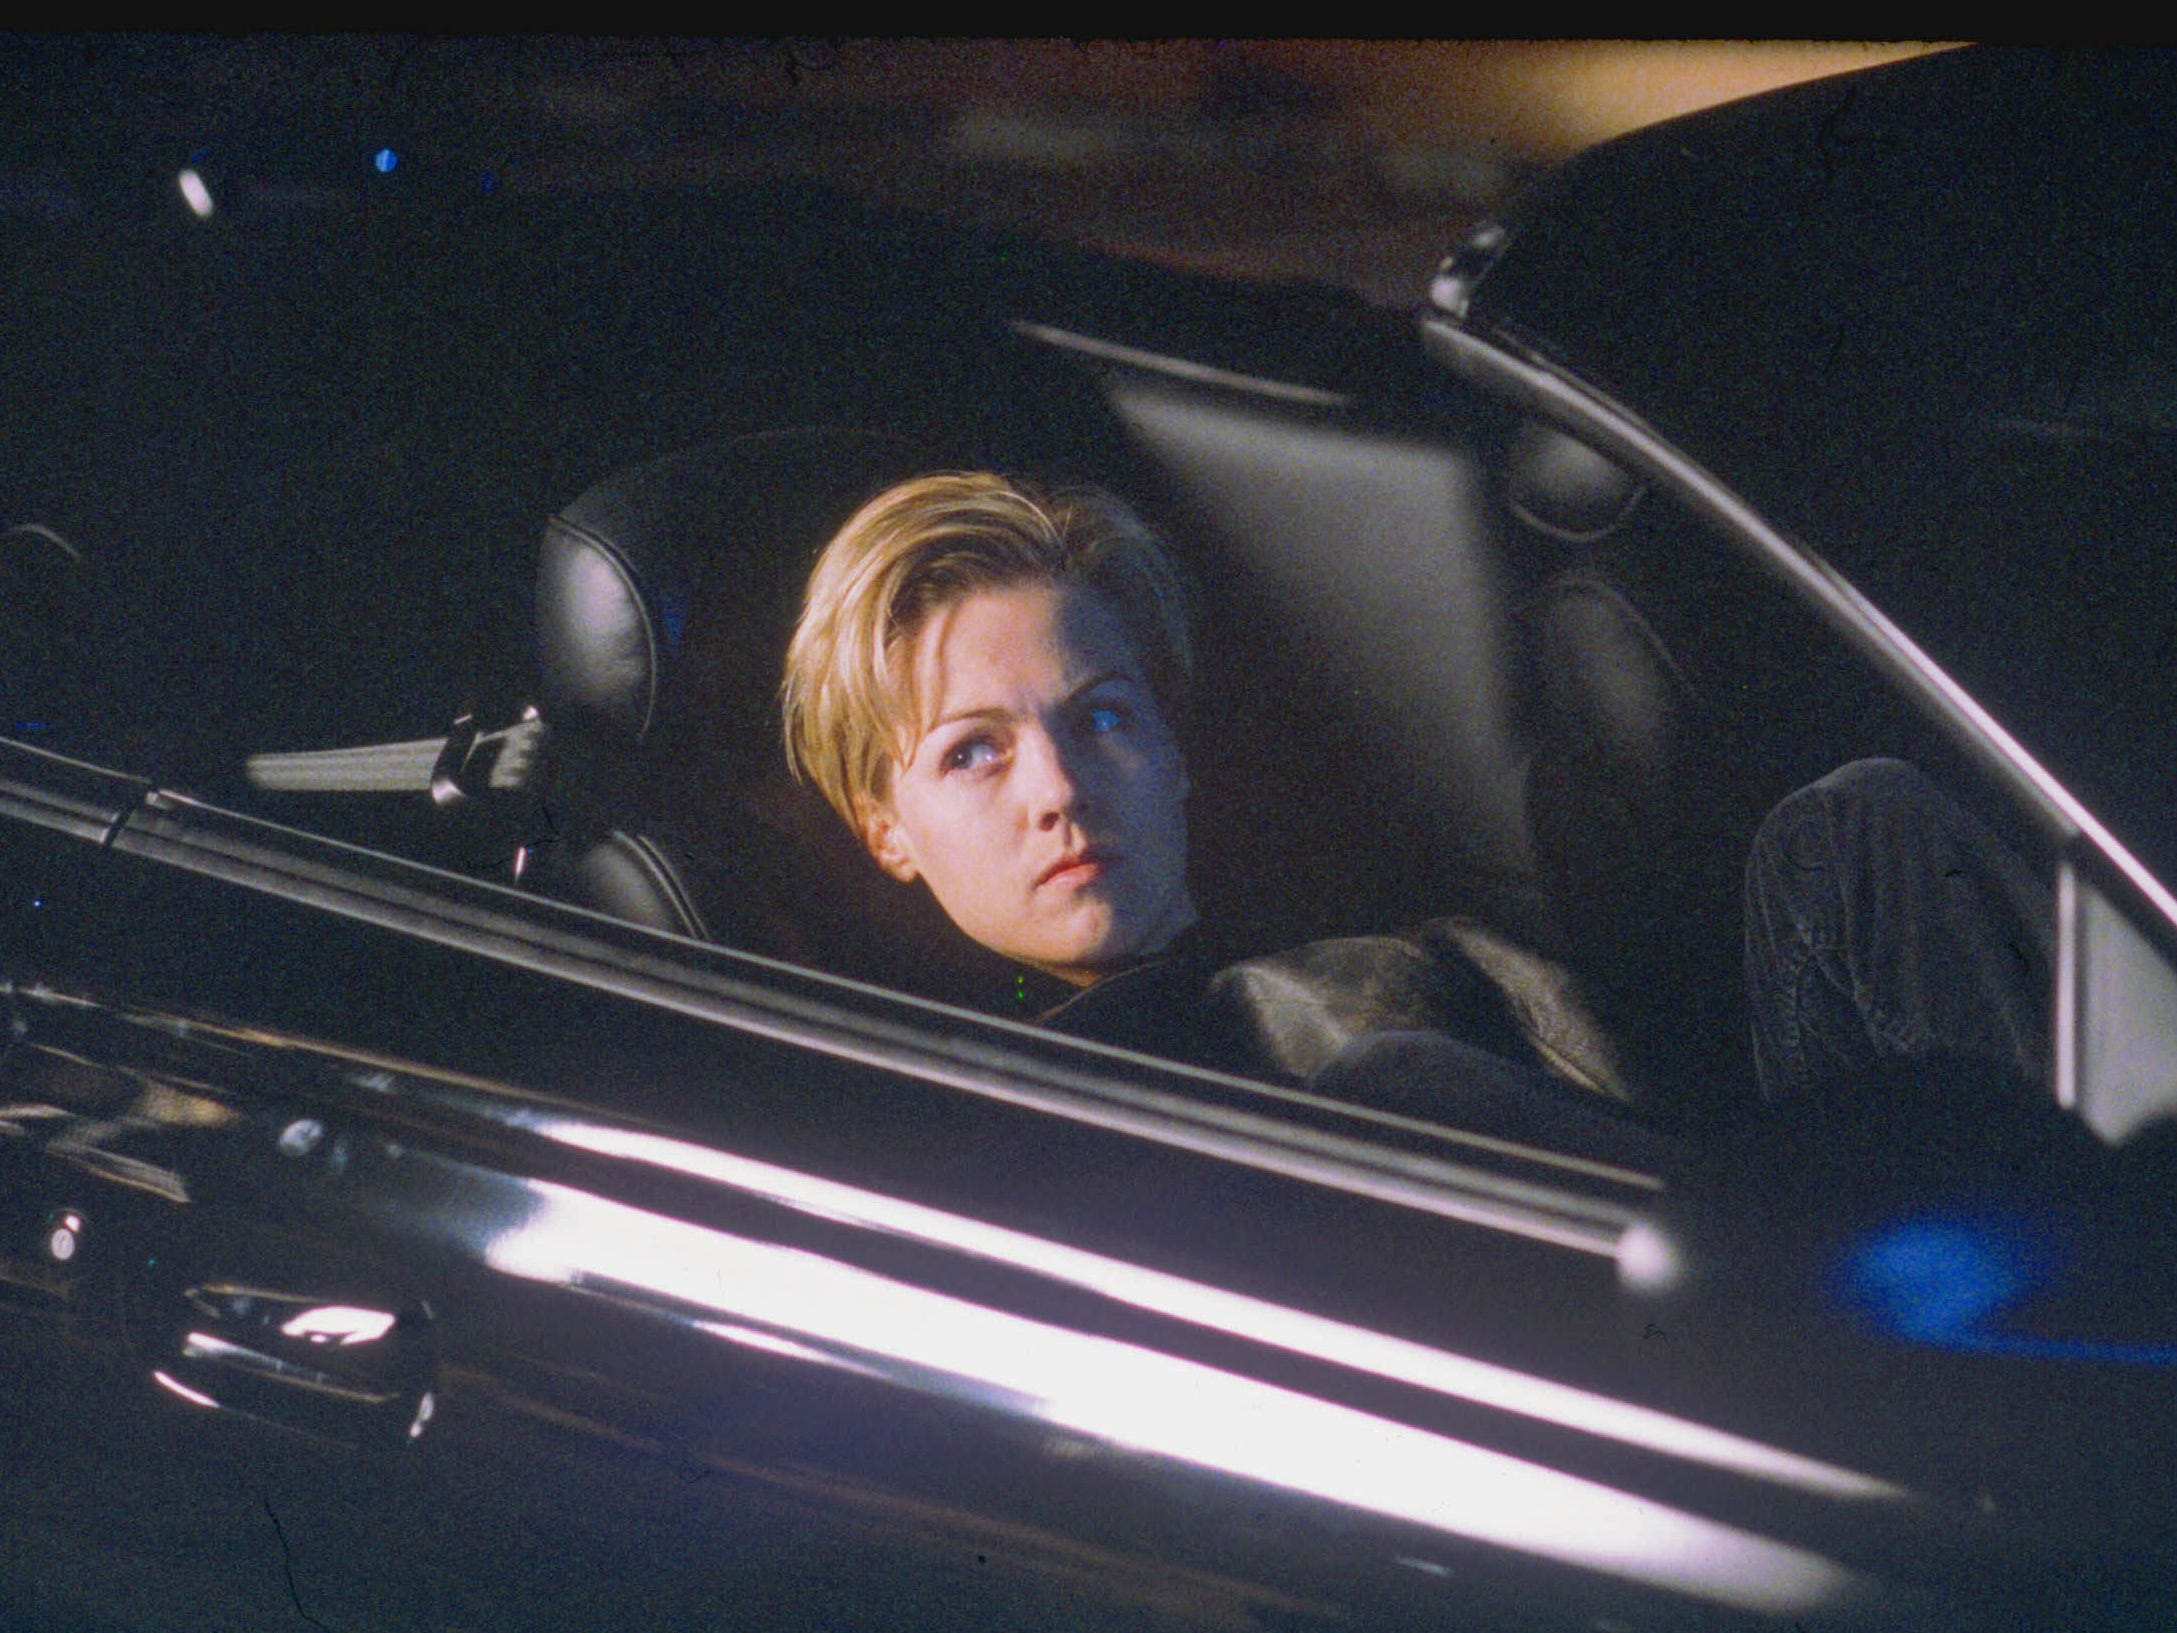 """Though Doherty was the best-known cast member when the show began, Jennie Garth quickly gained equal fame and carried """"90210"""" after she left. Her character, Kelly Taylor, evolved from the spoiled daughter of an addict to a become a better person. However, she had to go through hell to get there, including drug addiction and a rape she later avenged at gunpoint."""